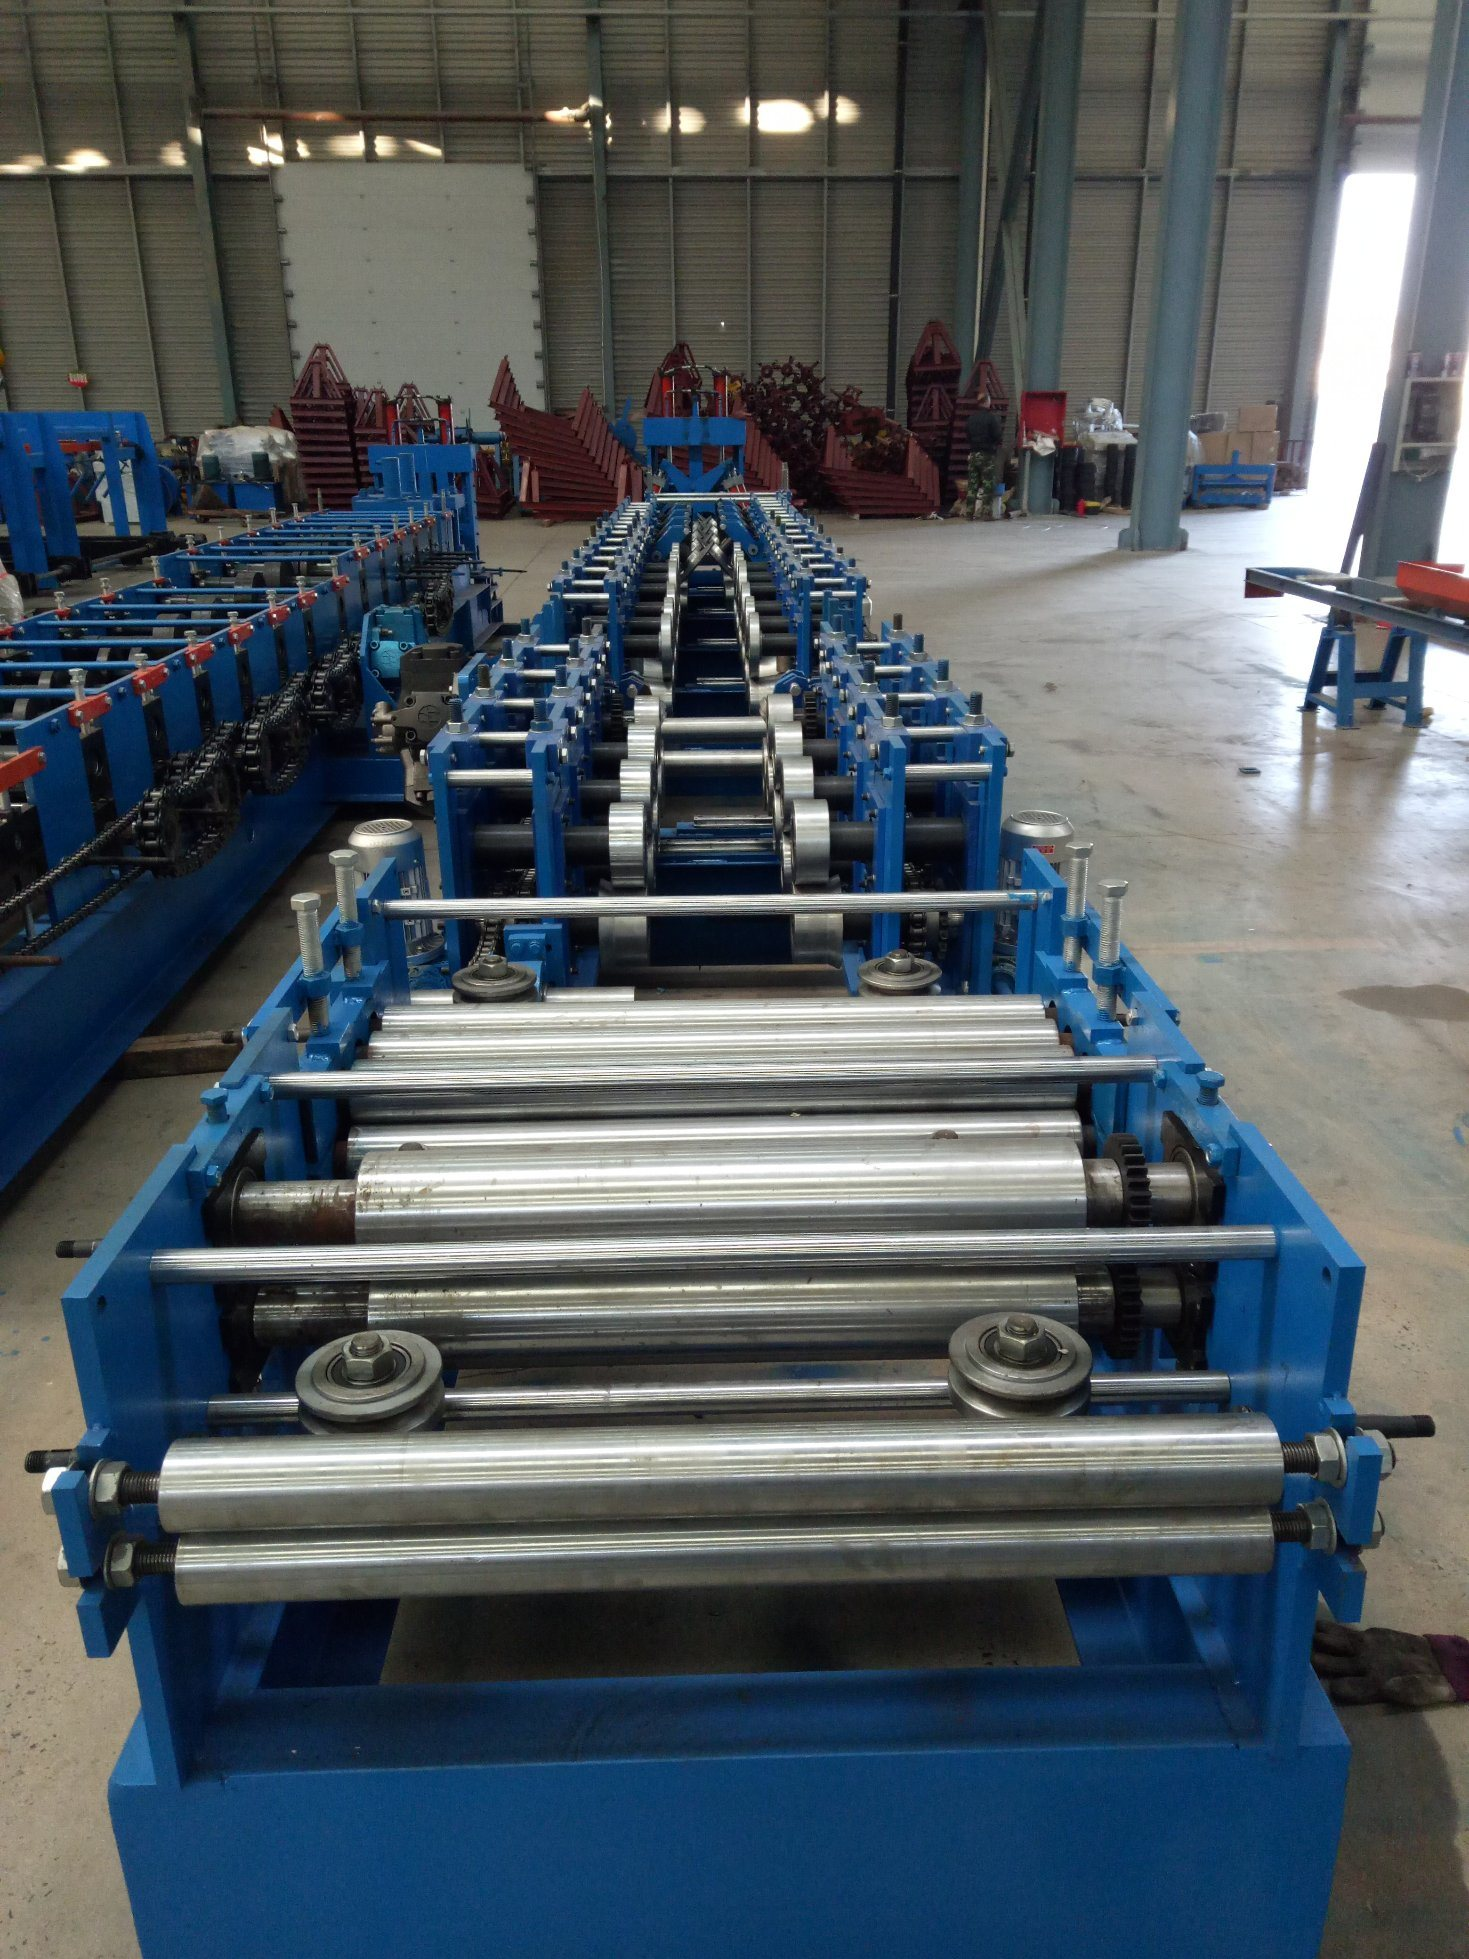 Cee purlin steel roll membentuk mesin